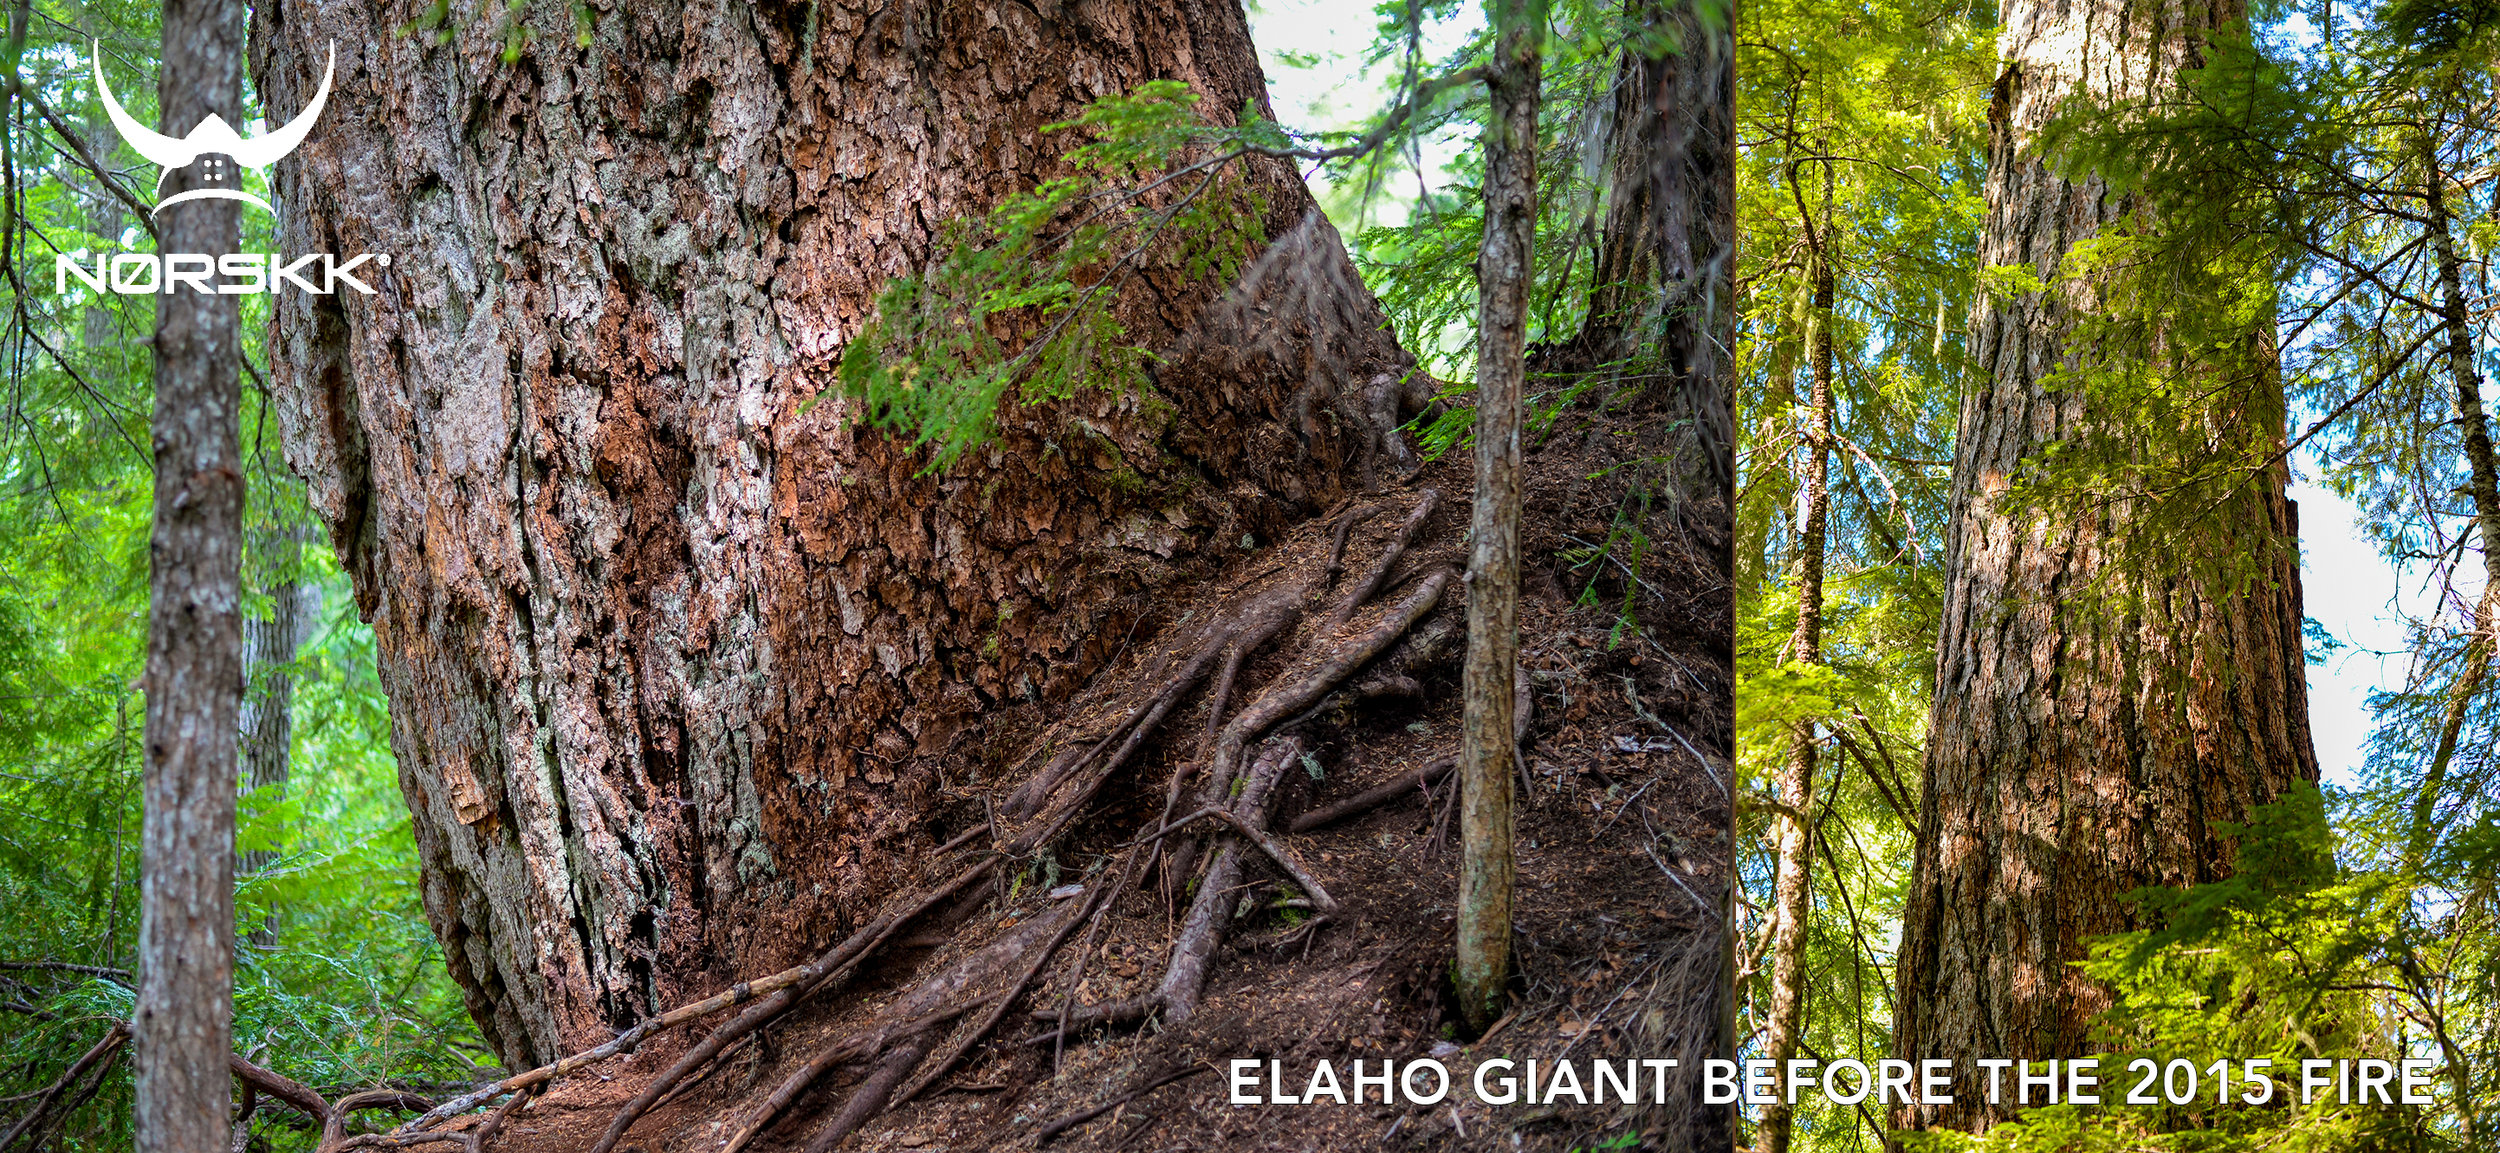 elaho-giant-before-fire.jpg